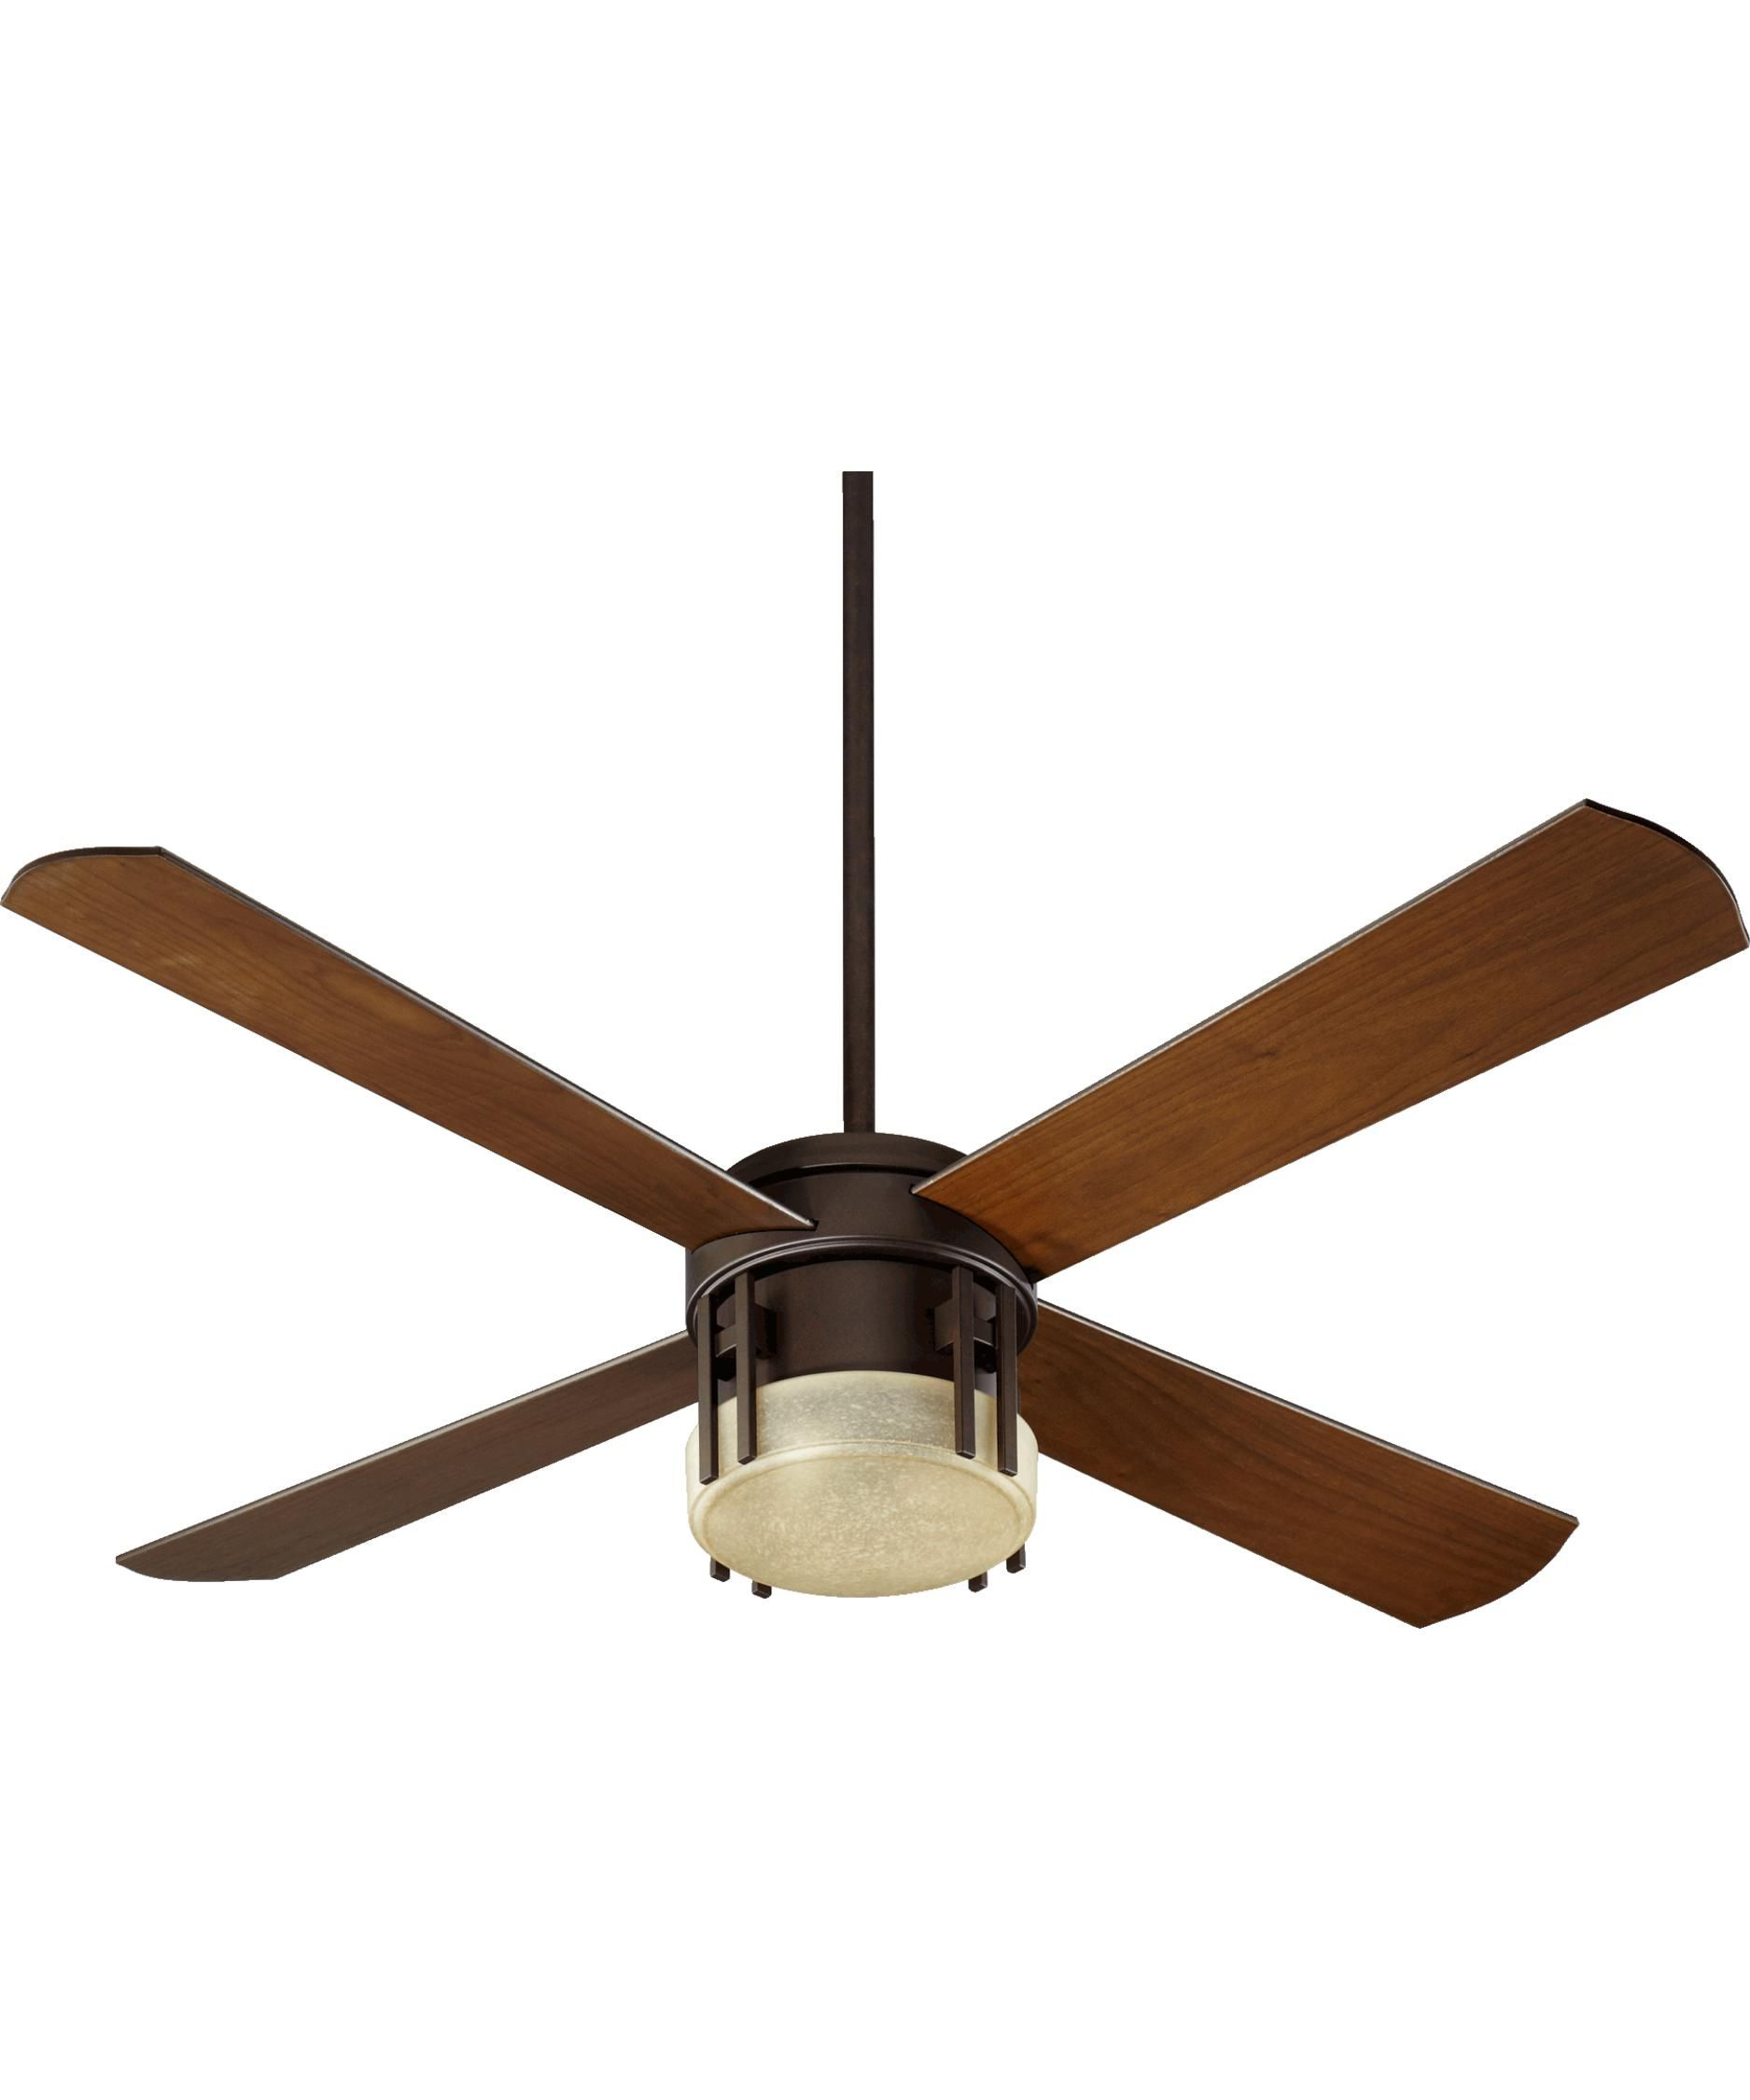 Mission 52 Inch Ceiling Fan With Light Kit By Quorum International